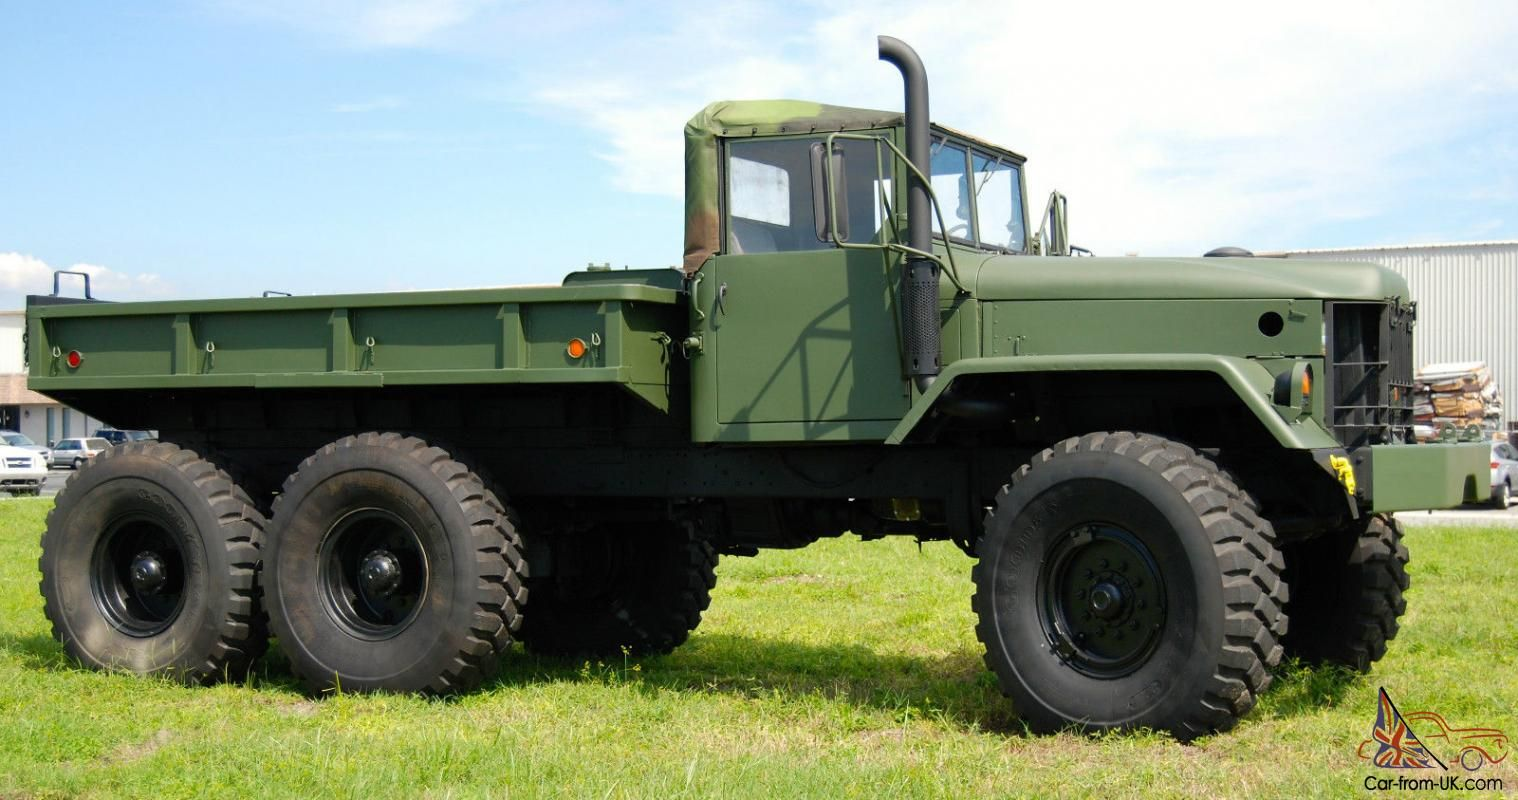 Military 5 Ton Not Deuce 2 5 Army Vehicles Army Truck Military Vehicles